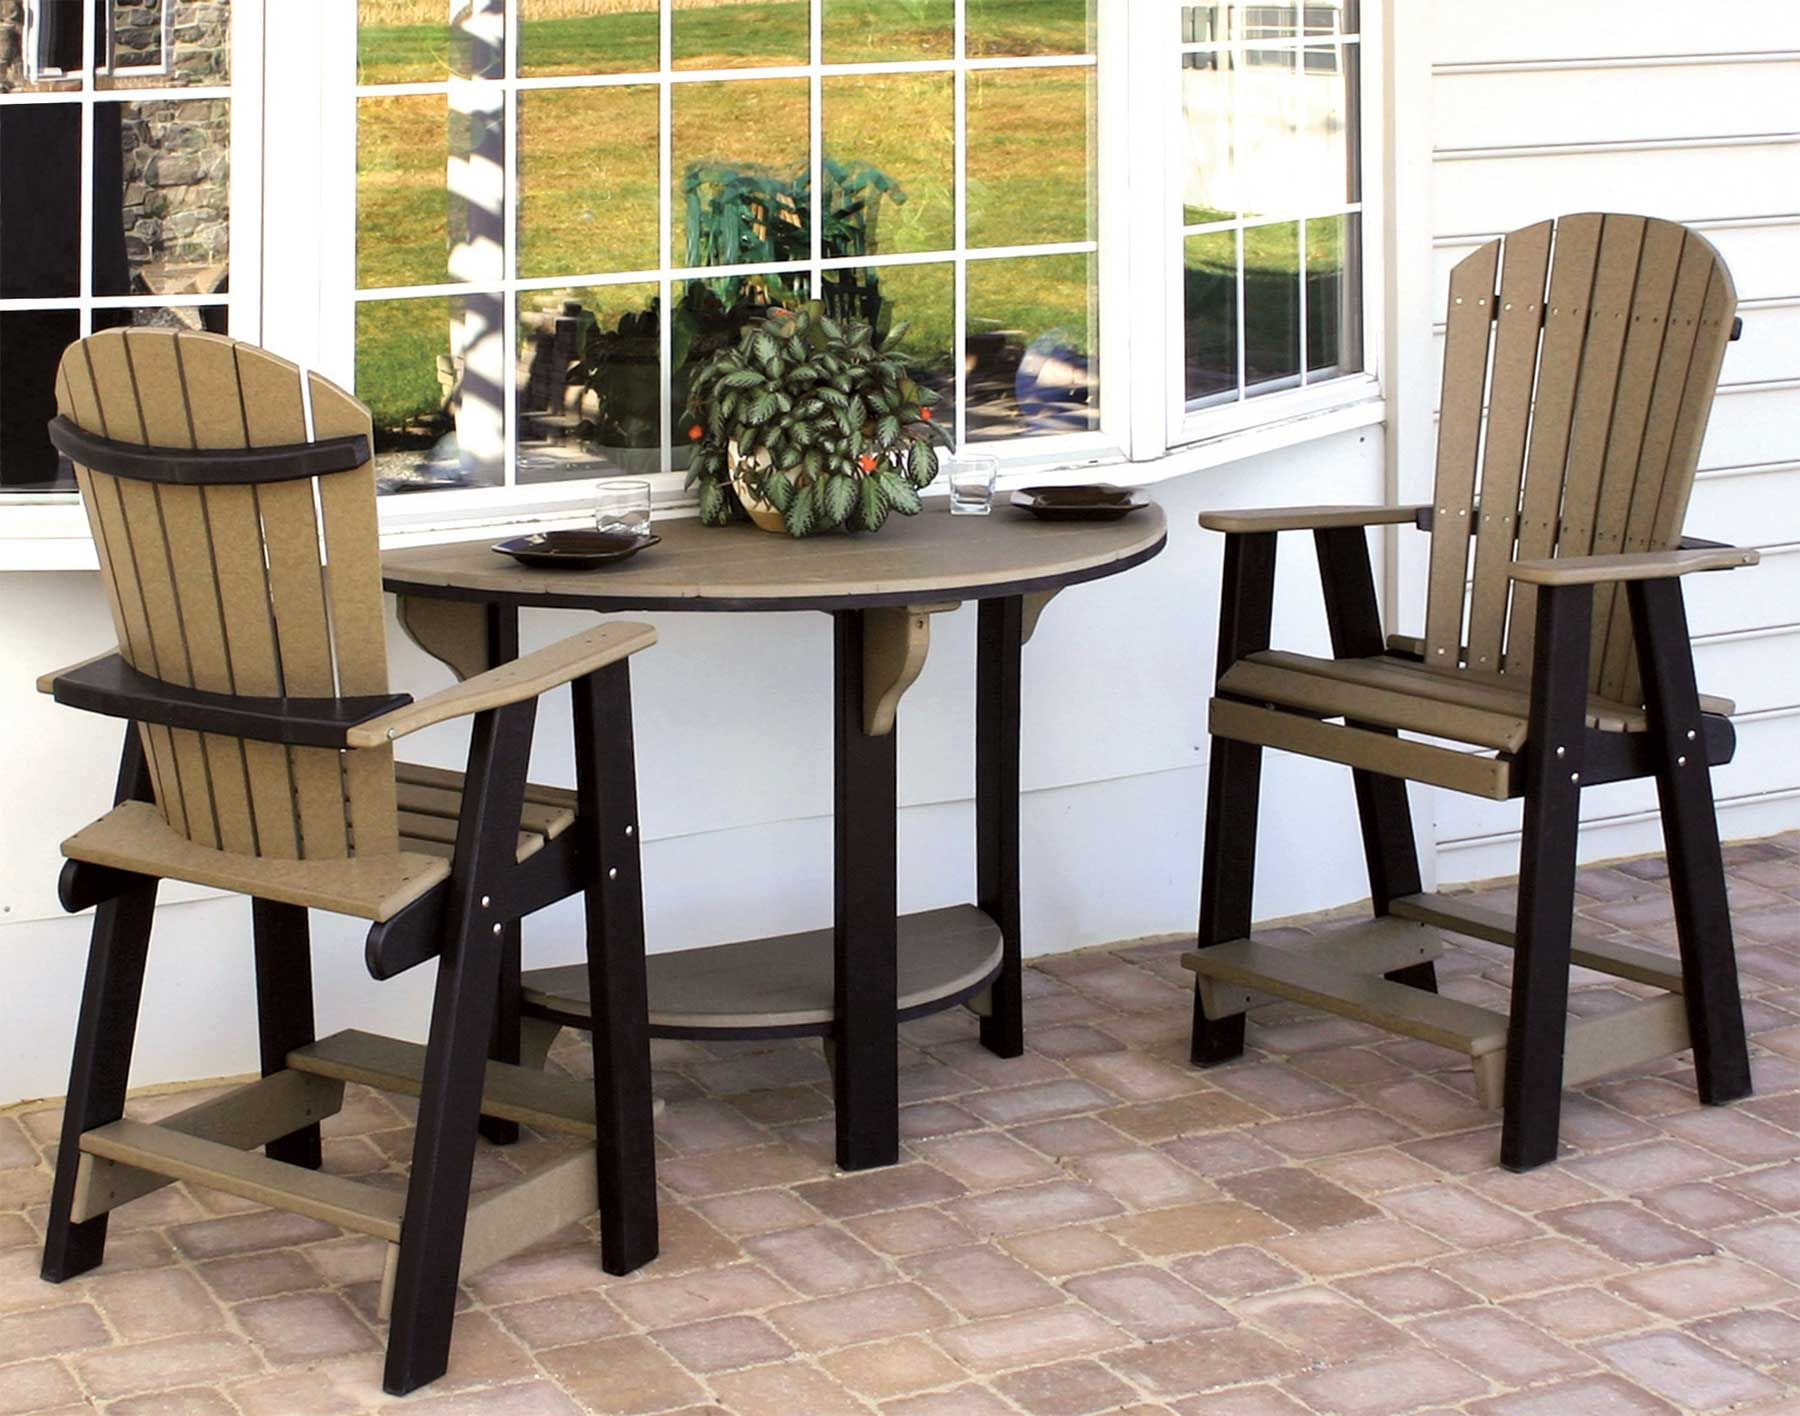 Cute Patio Set A Half Round Table With 2 Balcony Chairs